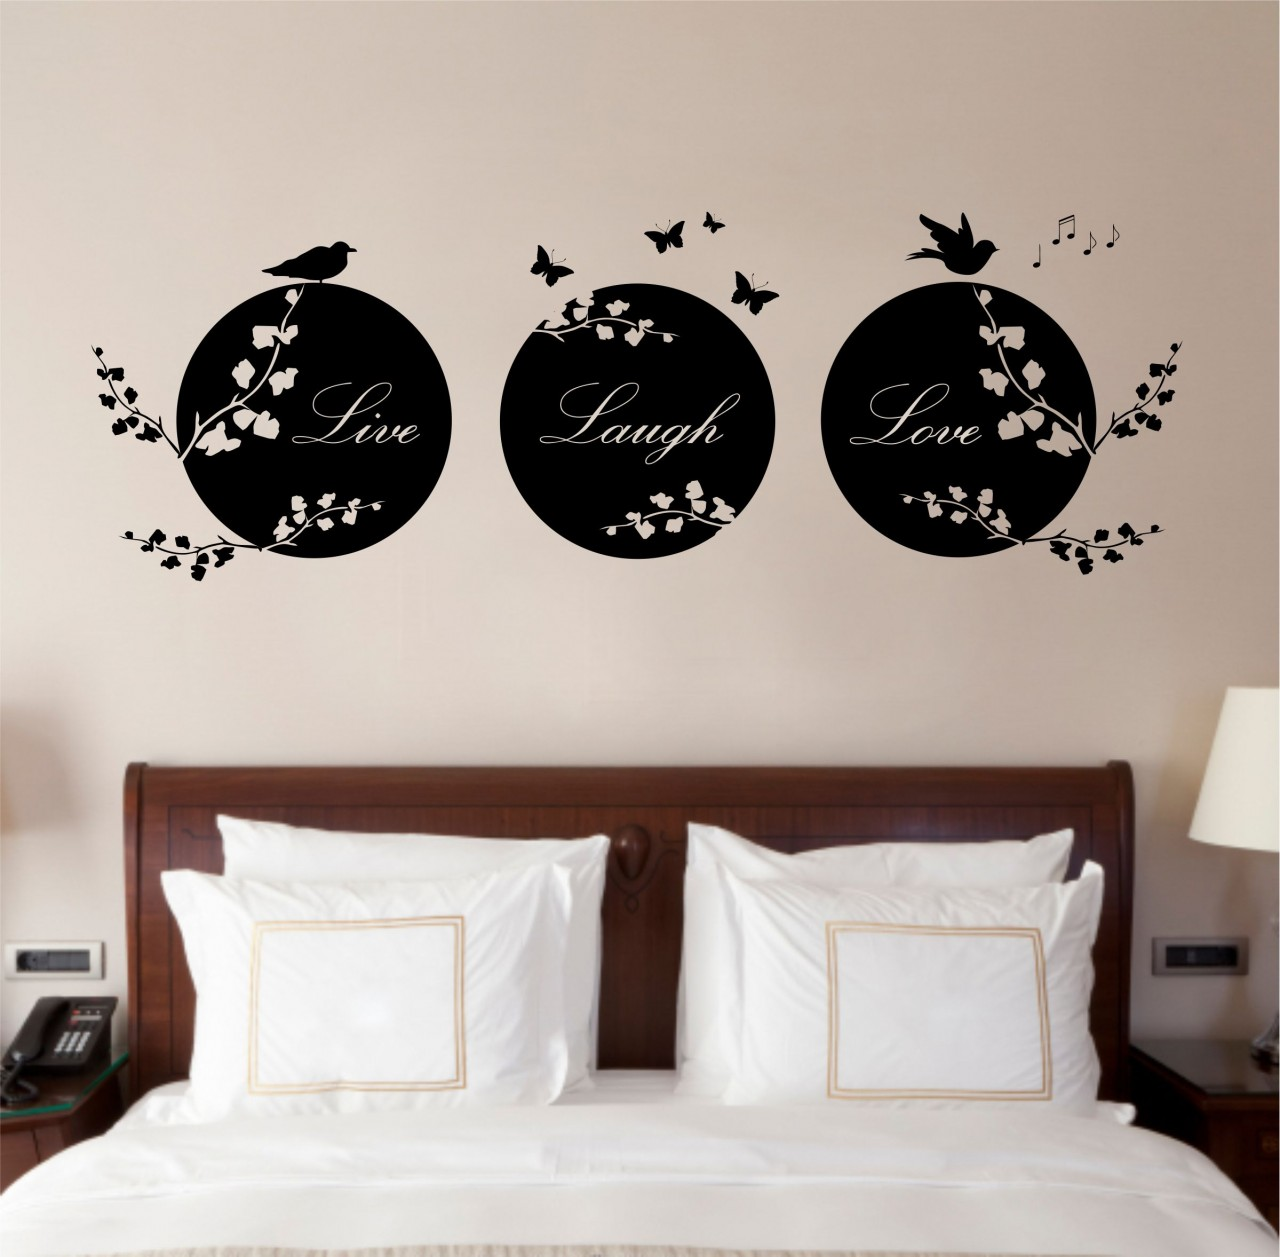 5 types of wall art stickers to beautify the room for Bedroom wall art decor